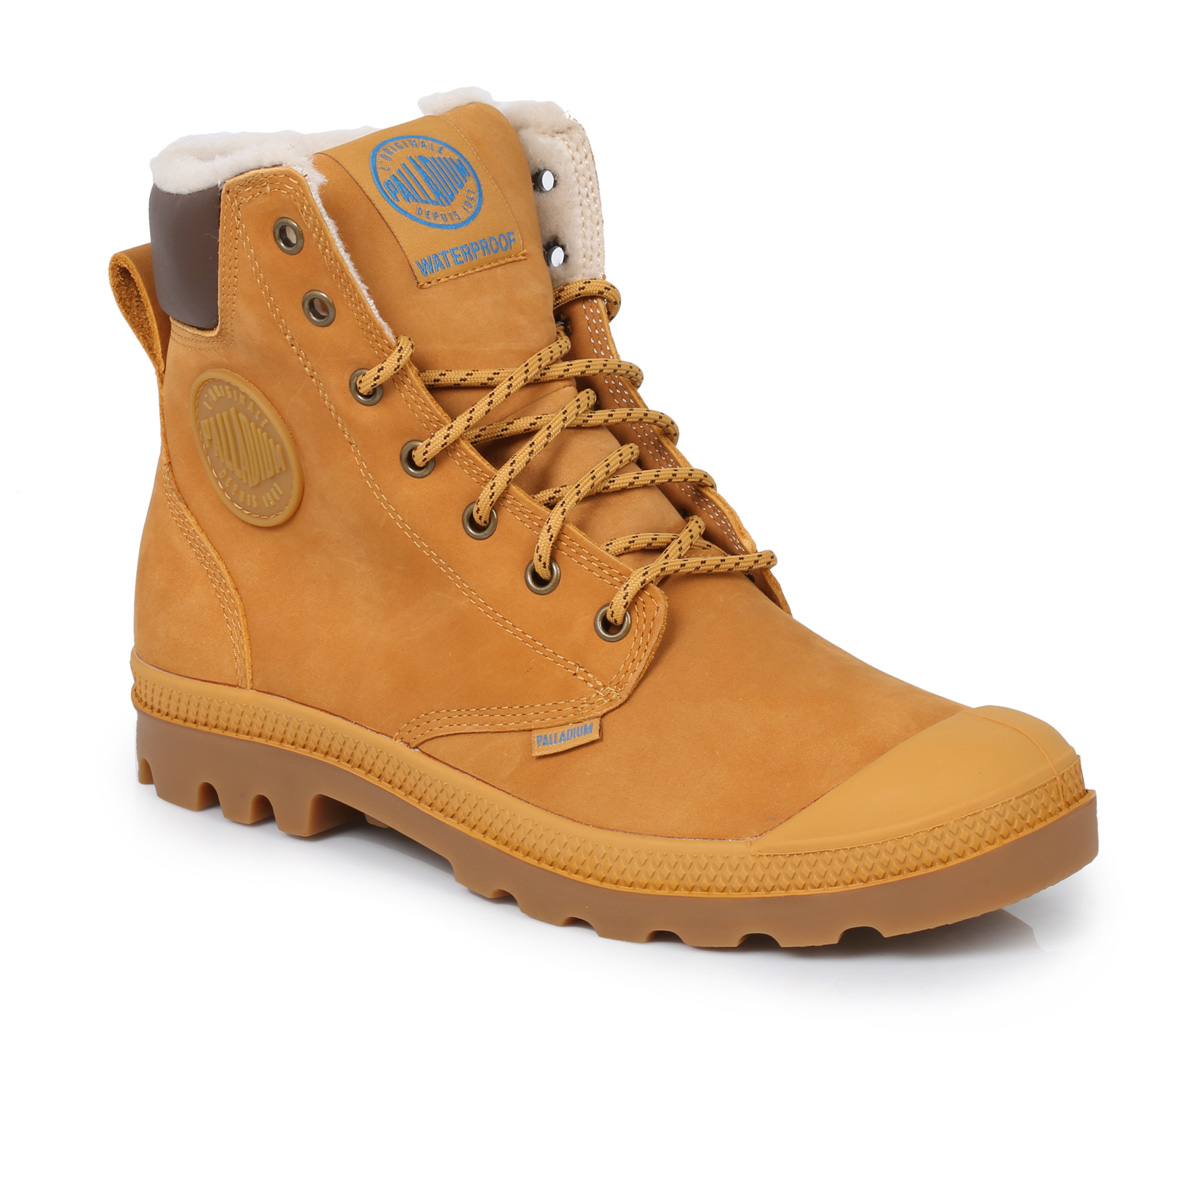 Simple Boots  Of The Pharell Palladium Maze Boots Being Unisex Boots They Can Be Worn By Both Males And Females And Guarantees A Statement Timberland Boots Previously Won By Male RnB Stars Are Back And